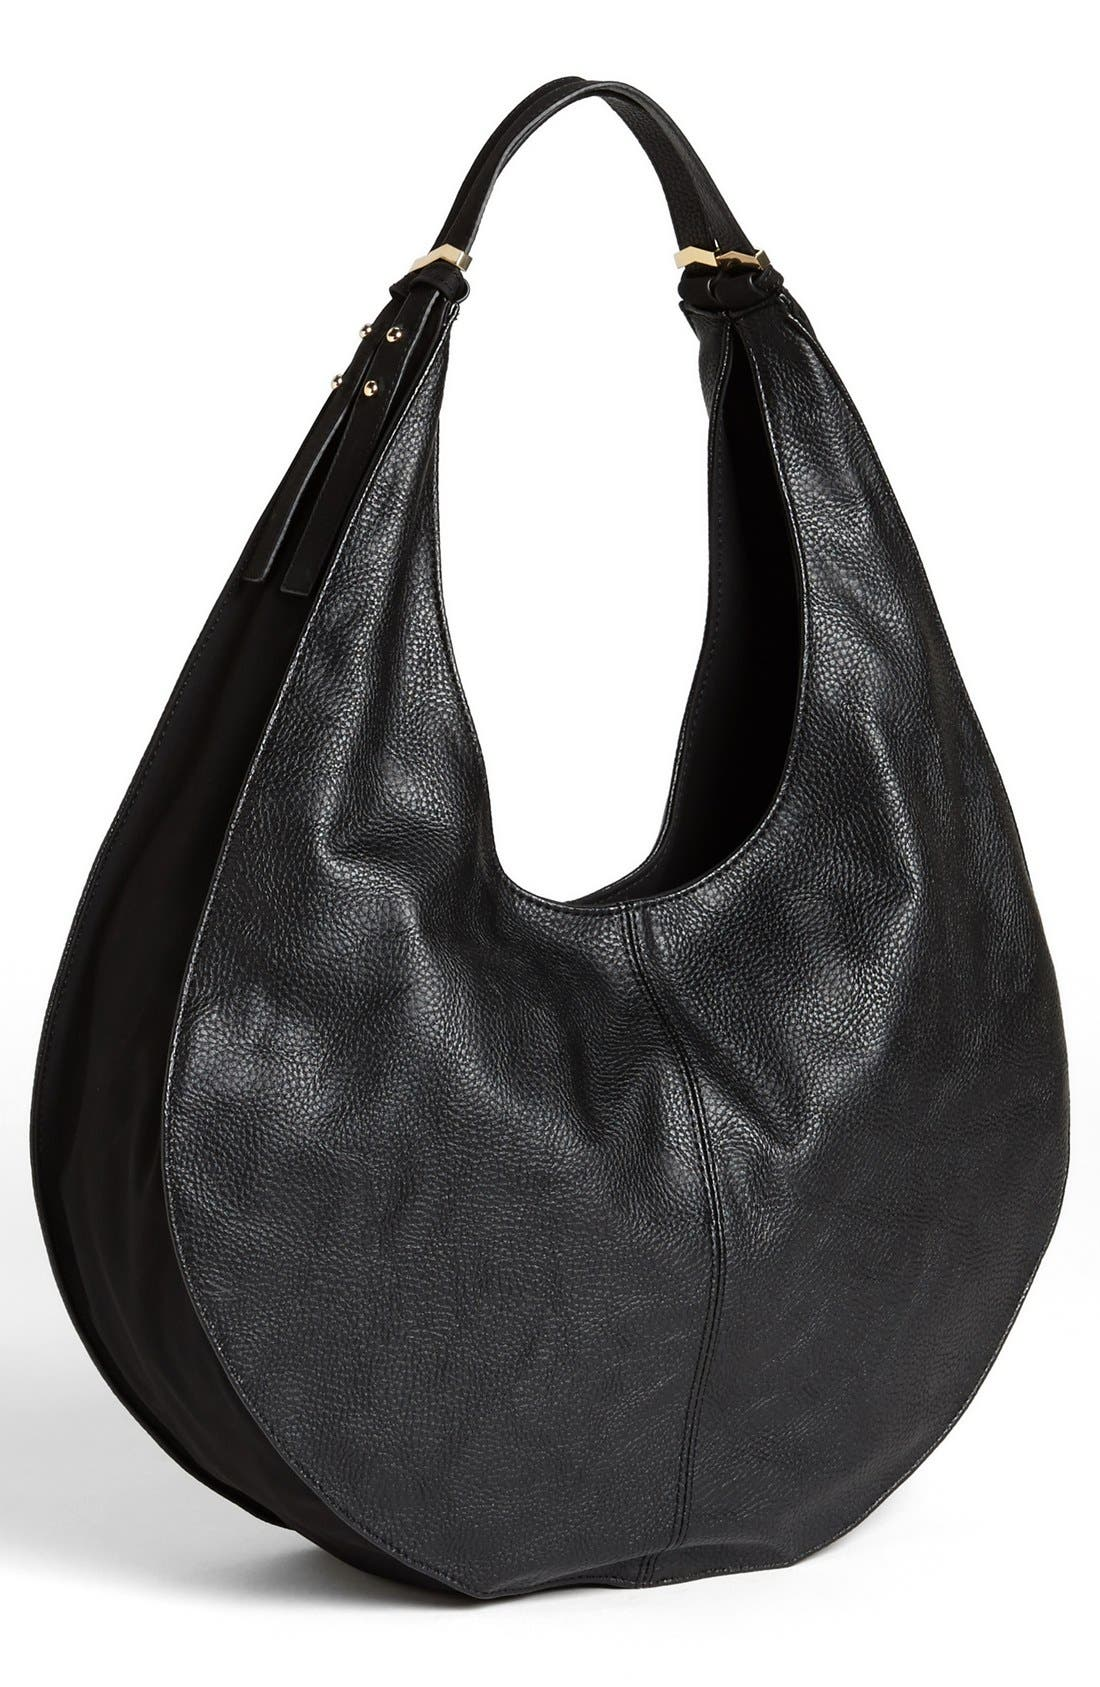 Main Image - French Connection Double Handle Hobo, Medium